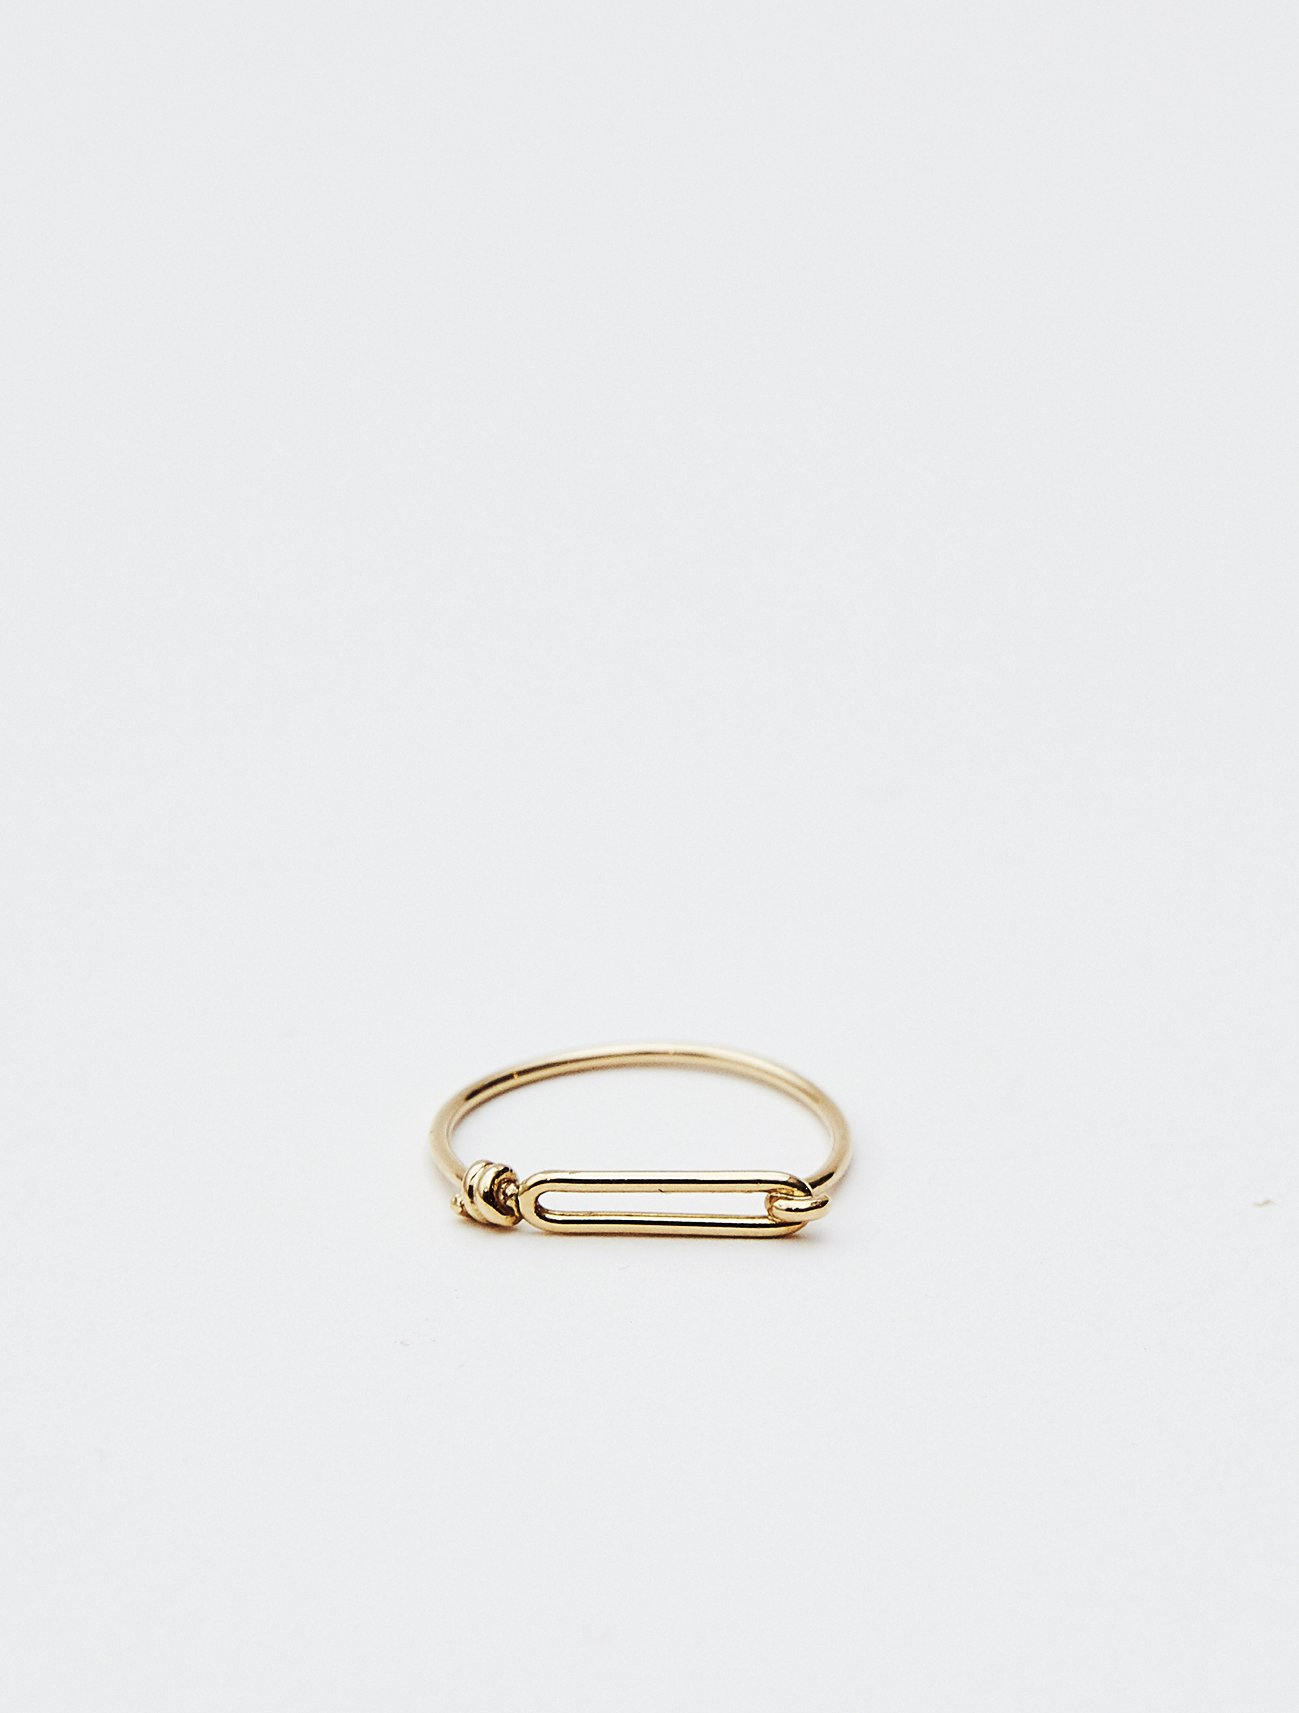 SOPHISTICATED VINTAGE / Gold wire ring (Hook) / 12号 / 在庫商品